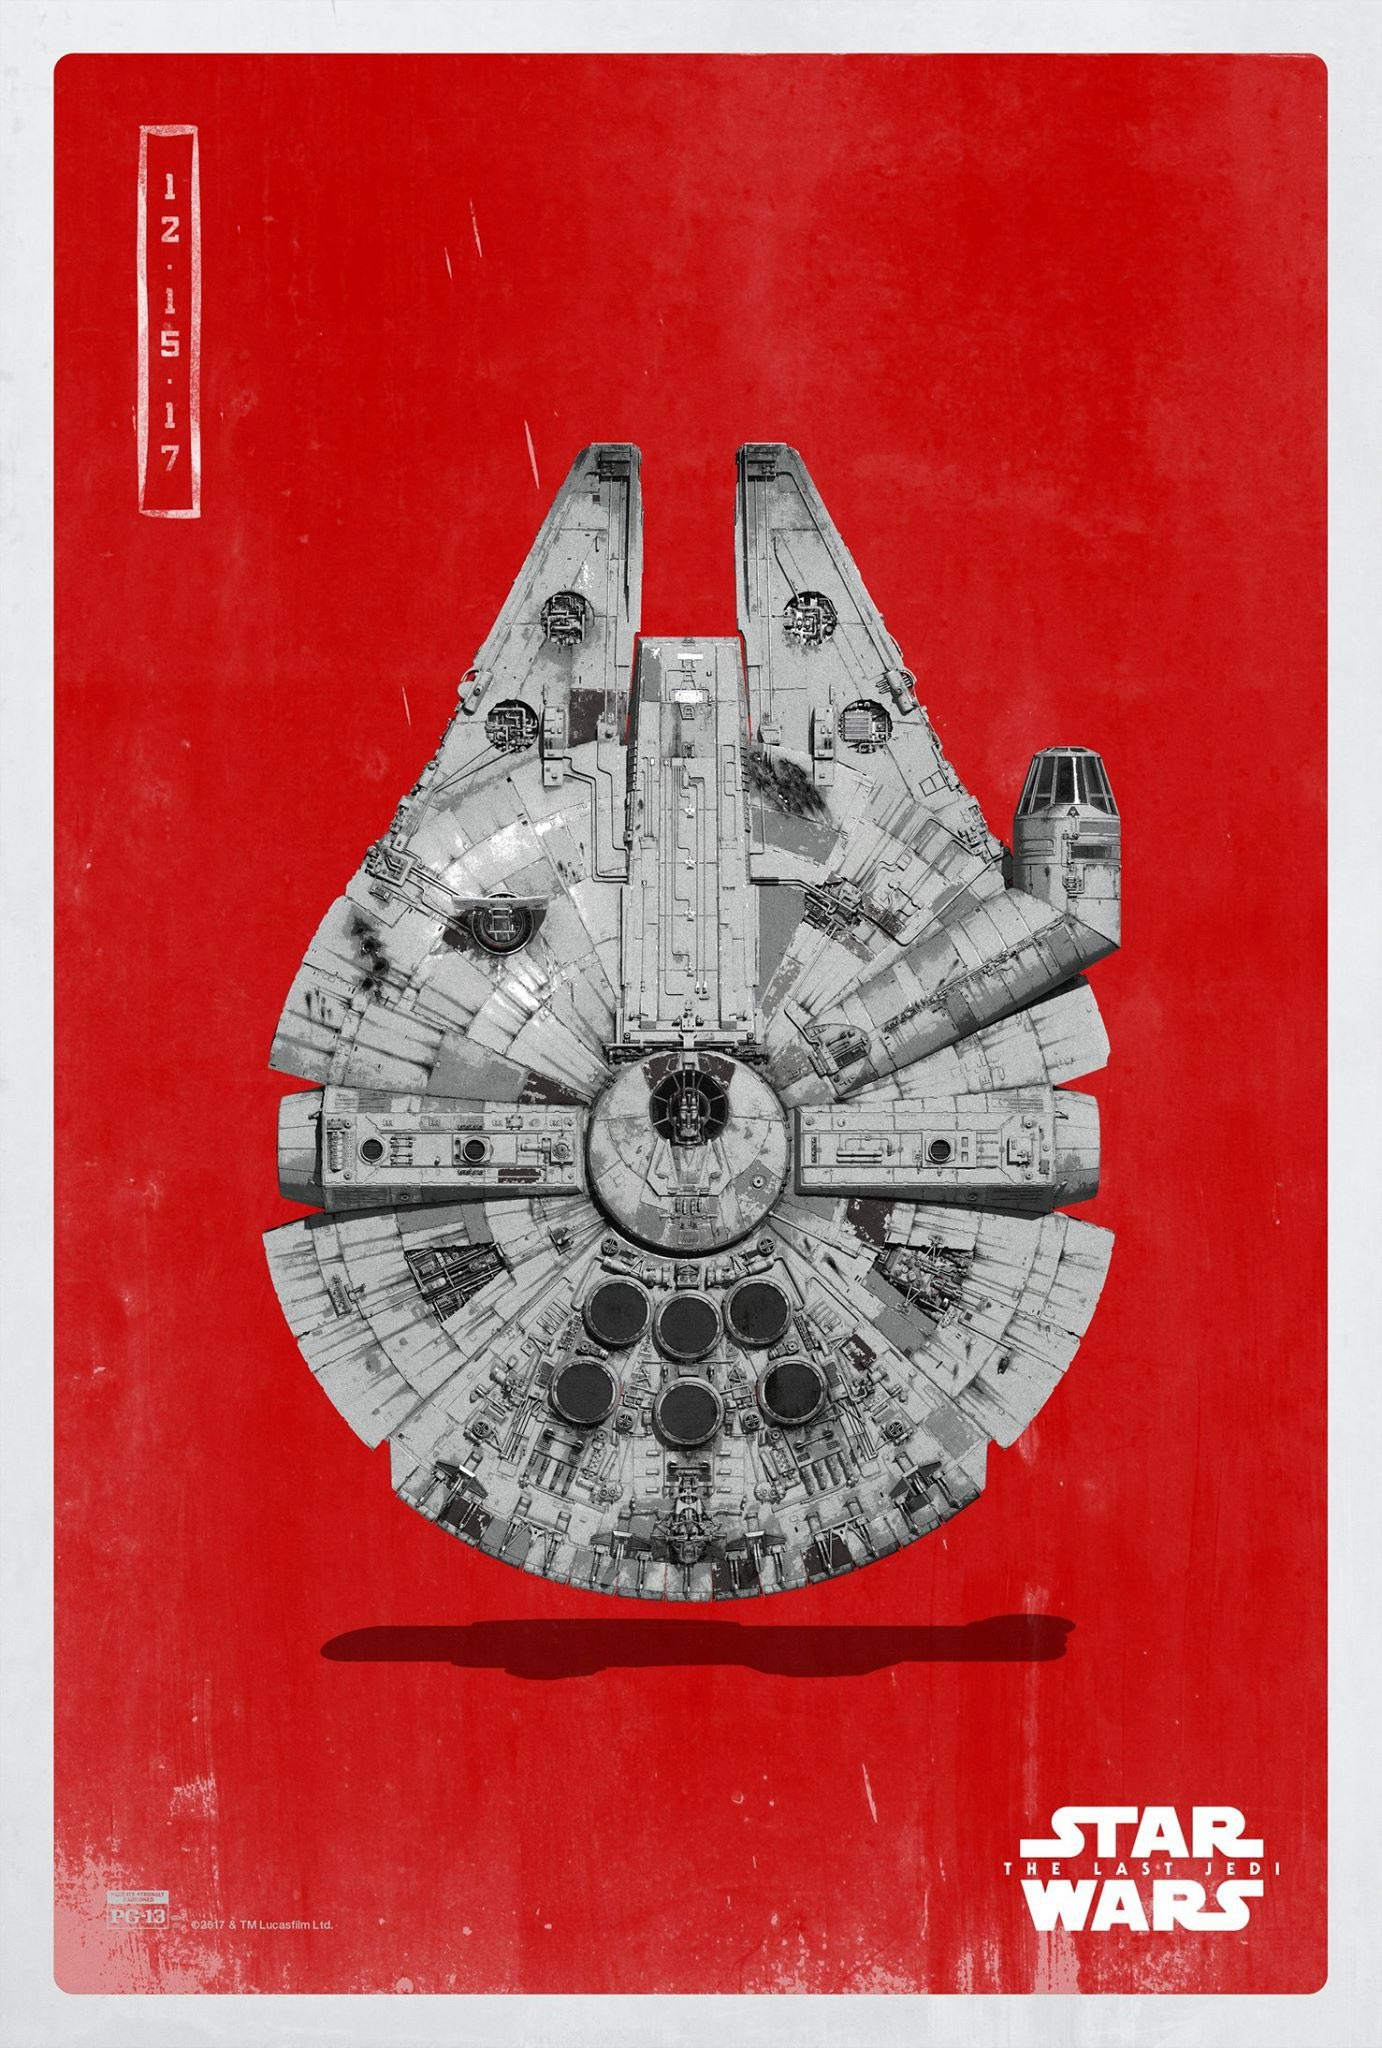 Star Wars: Episode VIII - The Last Jedi Poster #17